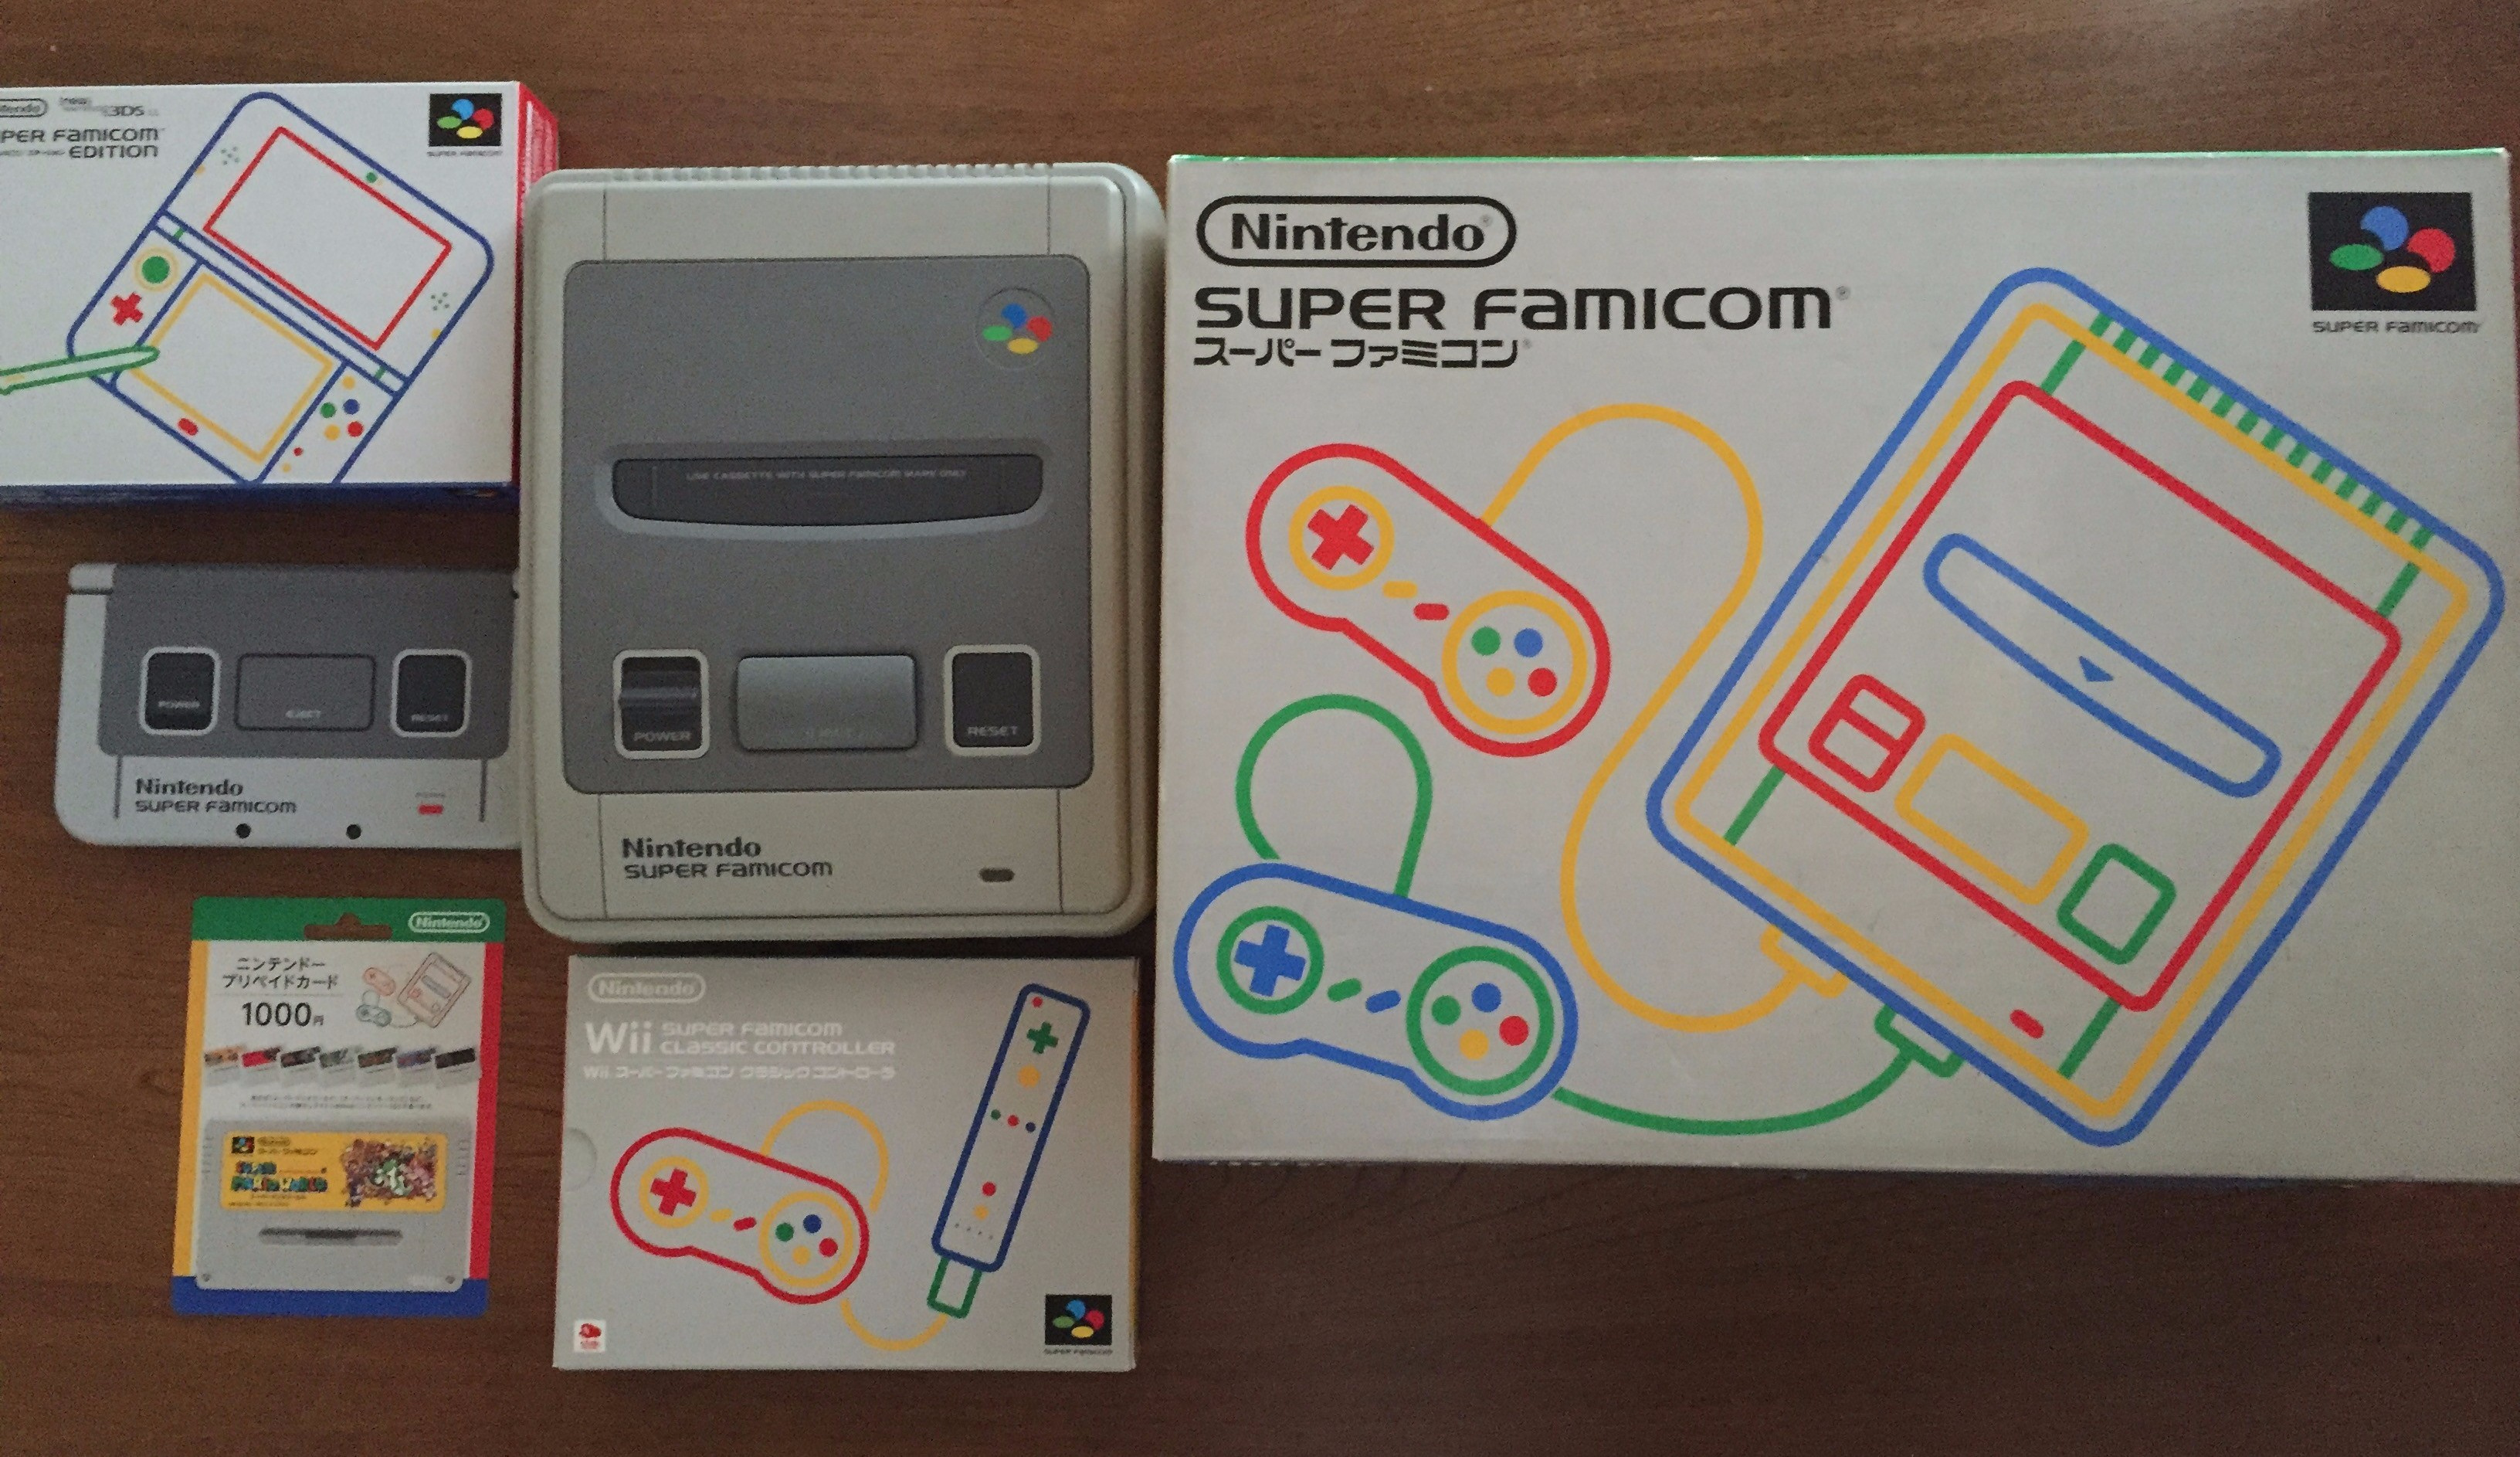 Feature Unboxing The Super Famicom New Nintendo 3ds Xl Life Wiring Diagram On 1st August Sent Out Package Tracking Numbers By Email To Those Who Pre Ordered Let Them Know That Machine Is Door And